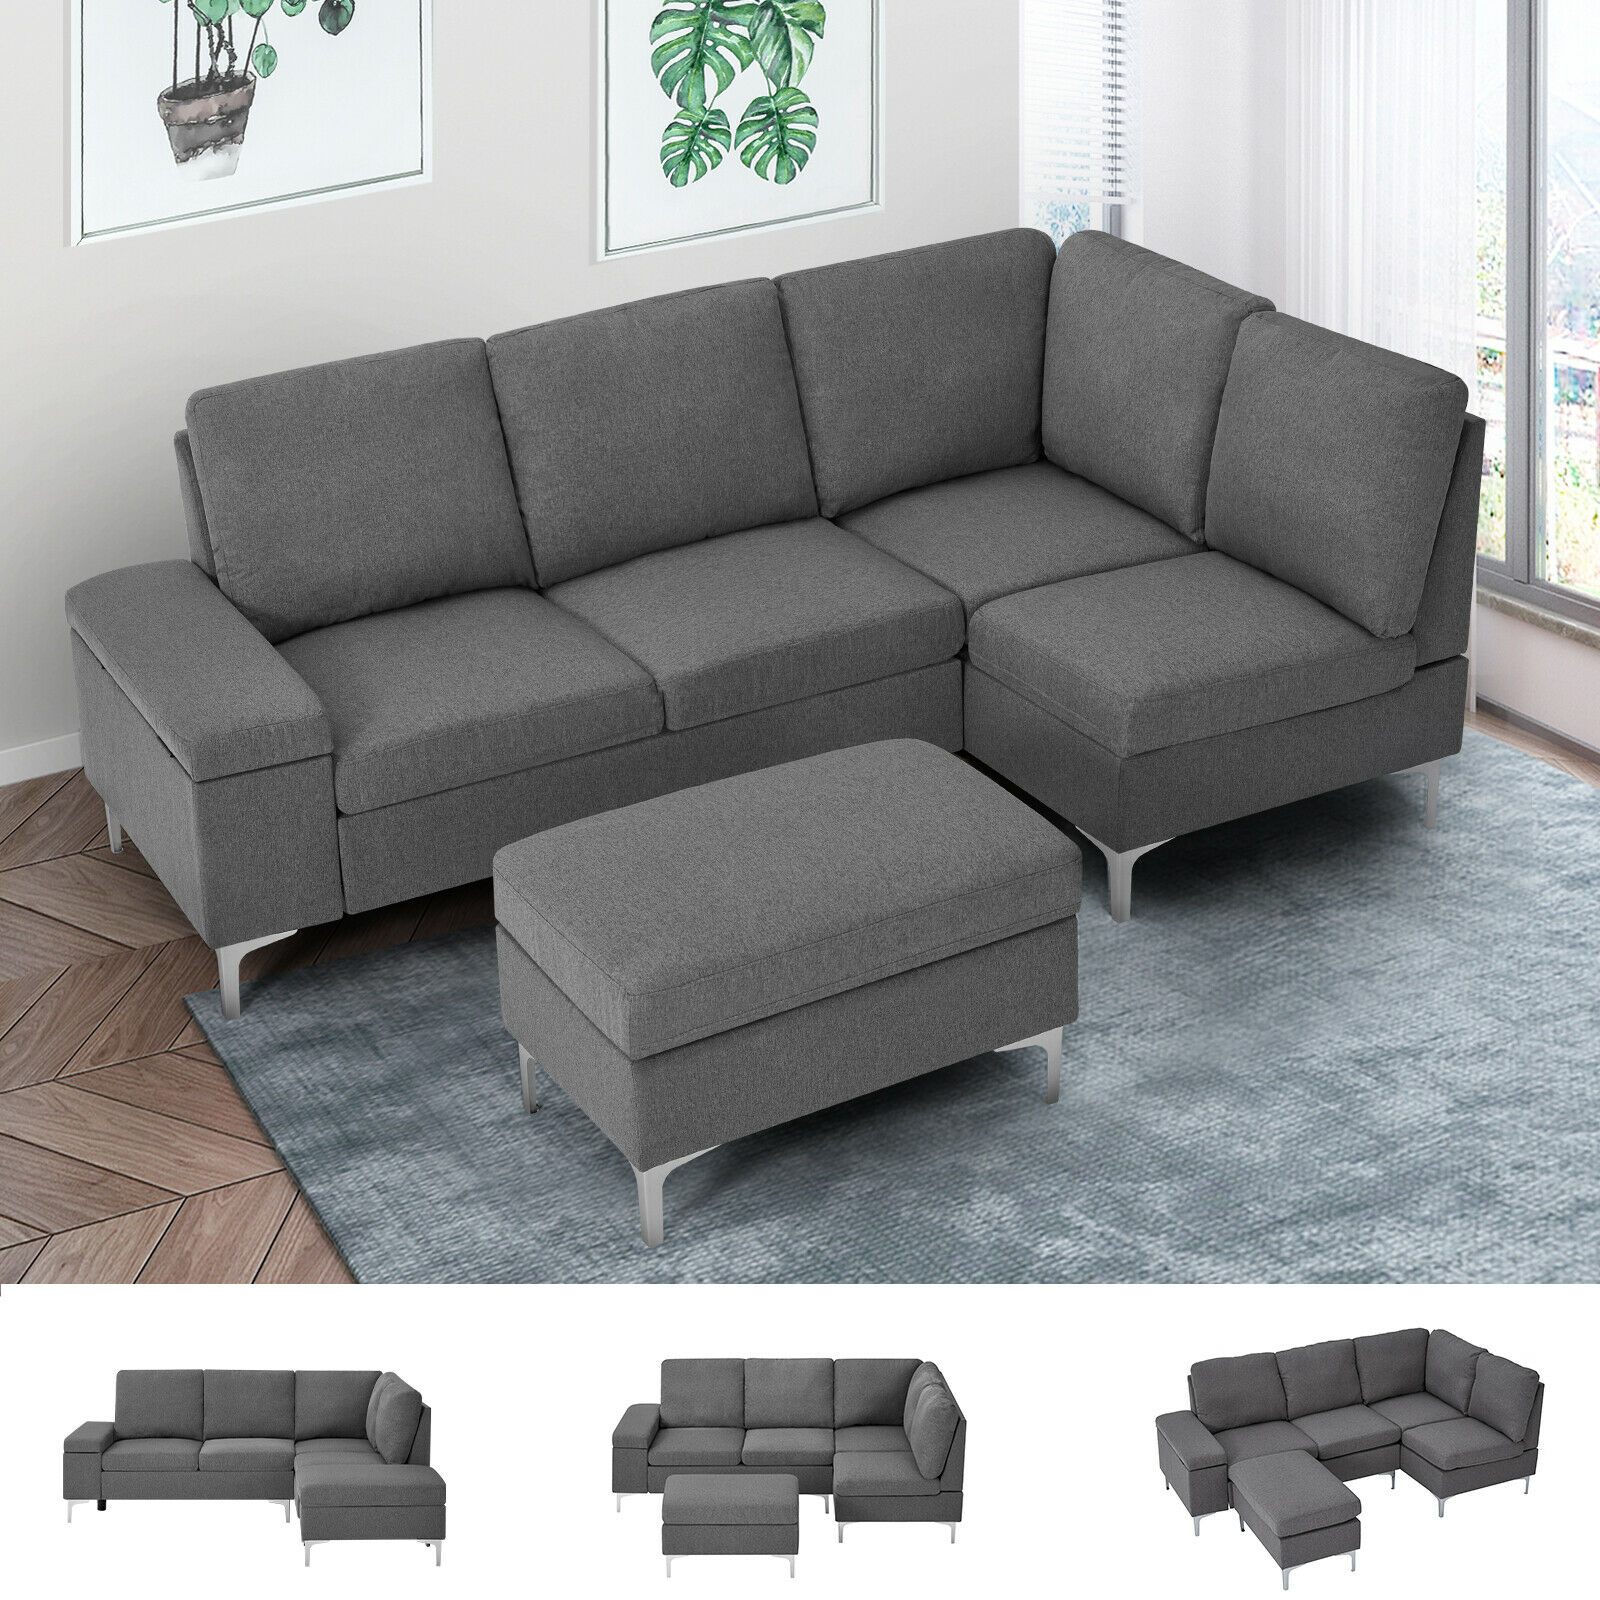 Esright Convertible Sectional Sofa with Ottoman & Armrest Storage Grey Furniture